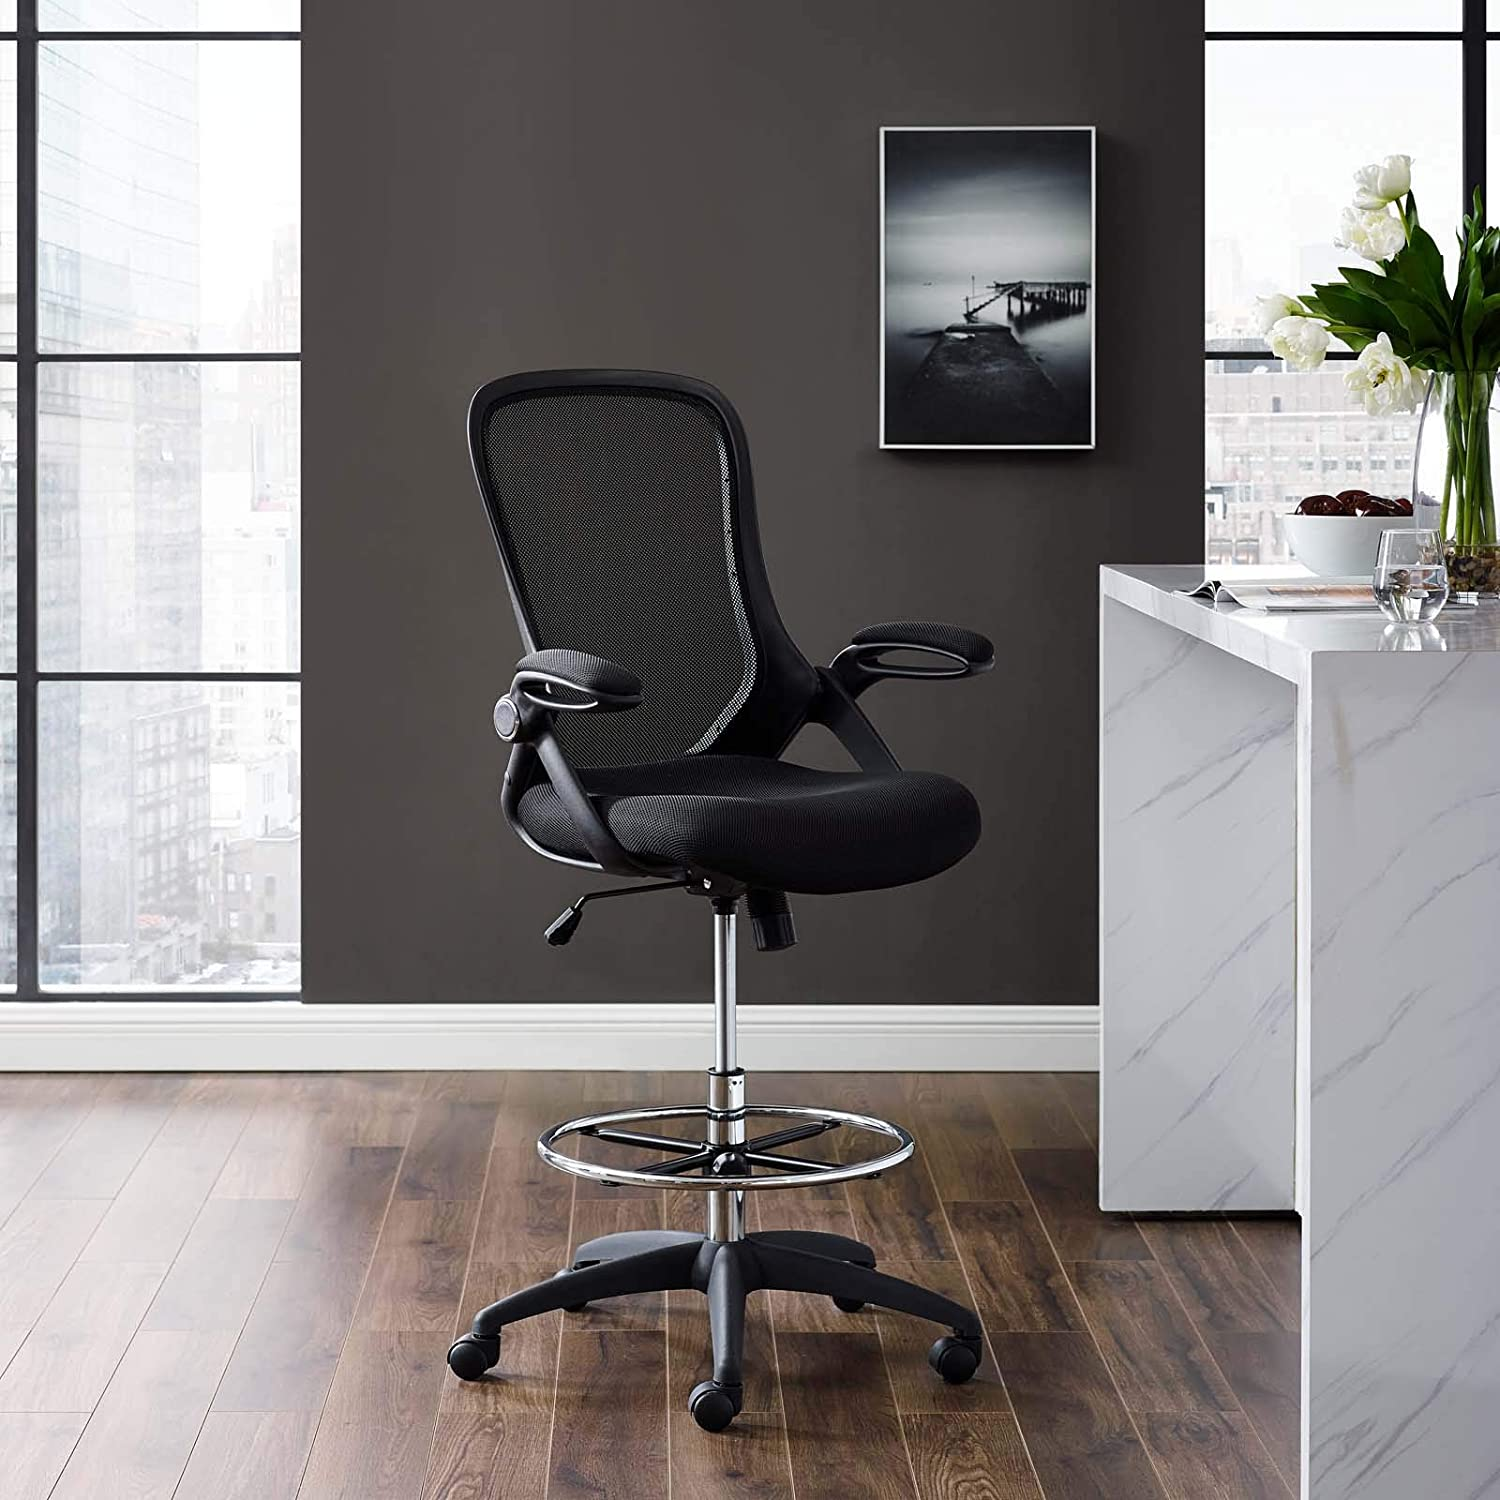 Modway Assert Drafting Chair In Black - Tall Office Chair For Adjustable  Standing Desks - Drafting Stool With Flip-Up Arms